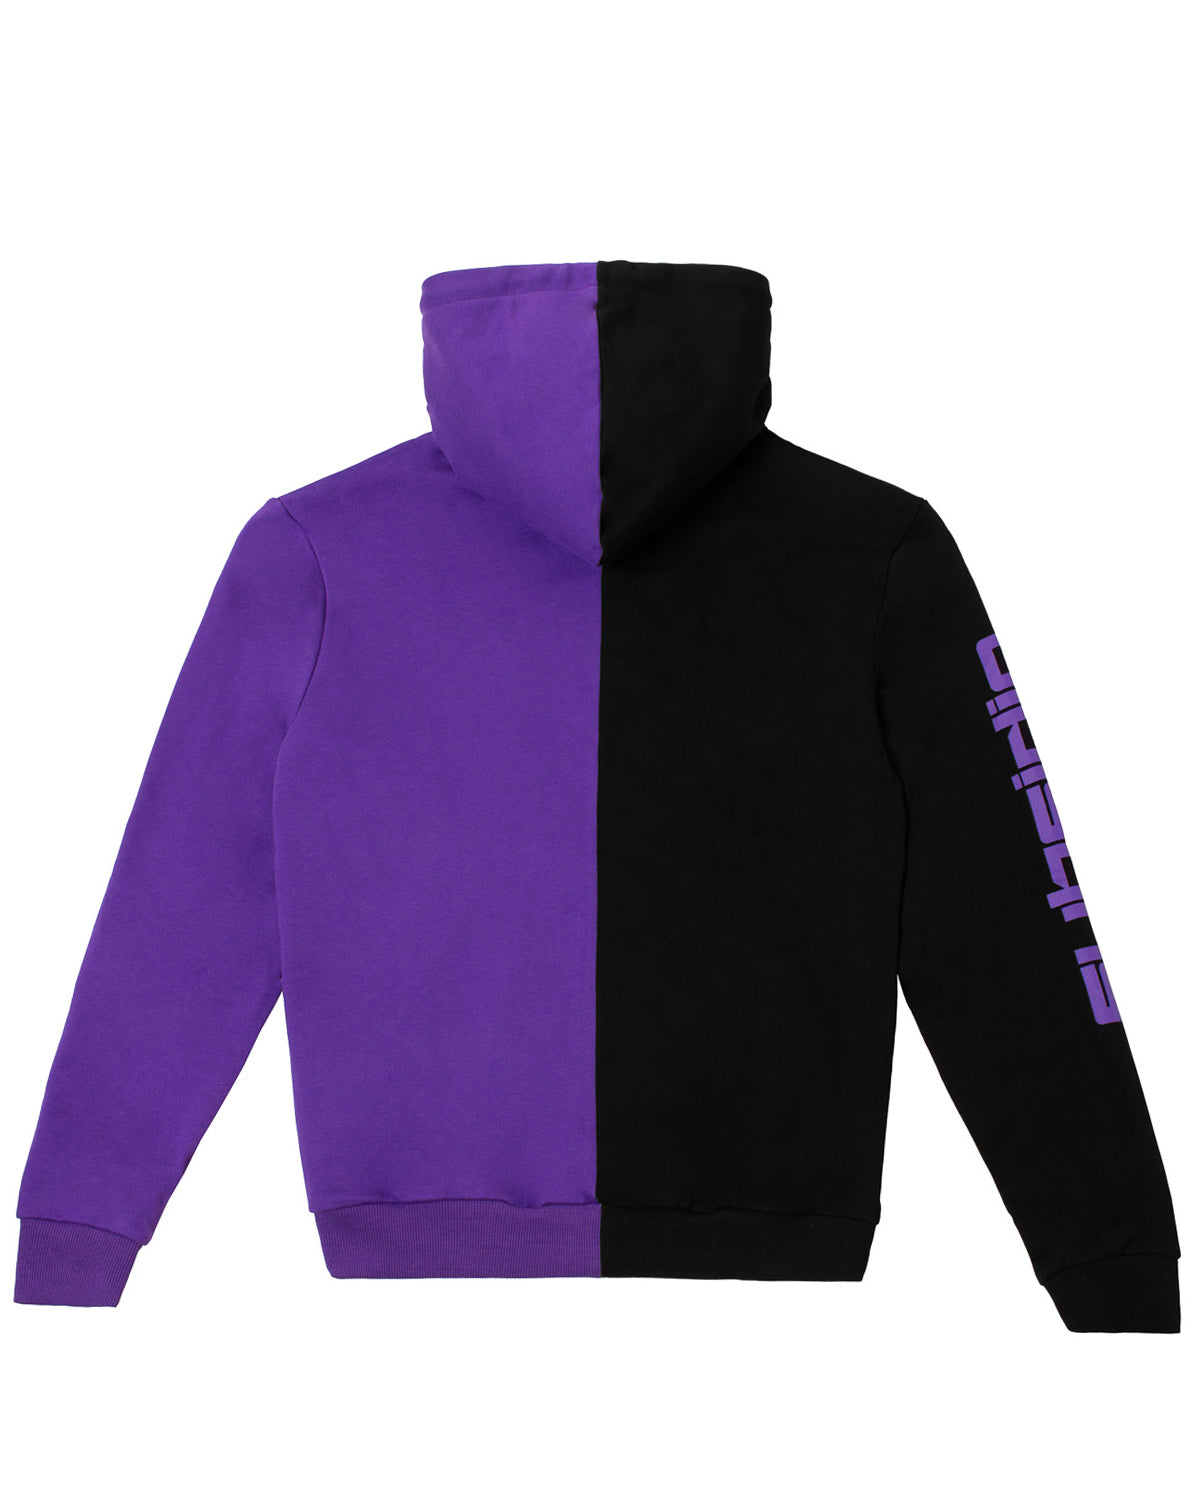 'Subsidia' Split Hoodie - Black/Purple